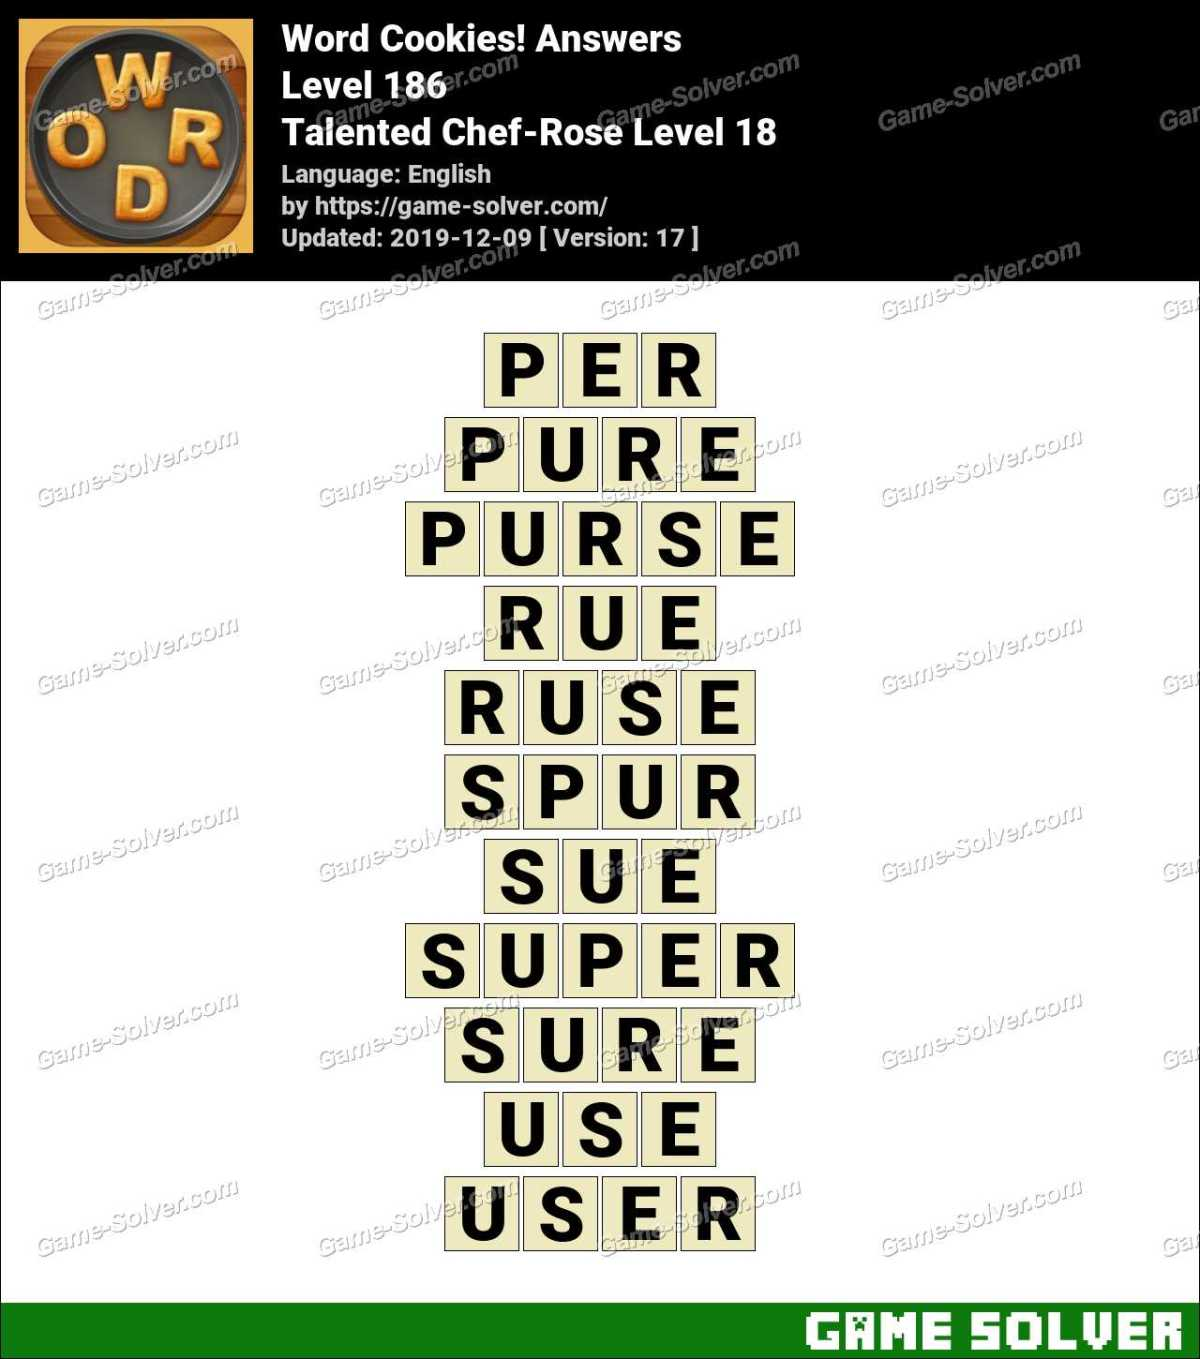 Word Cookies Talented Chef-Rose Level 18 Answers